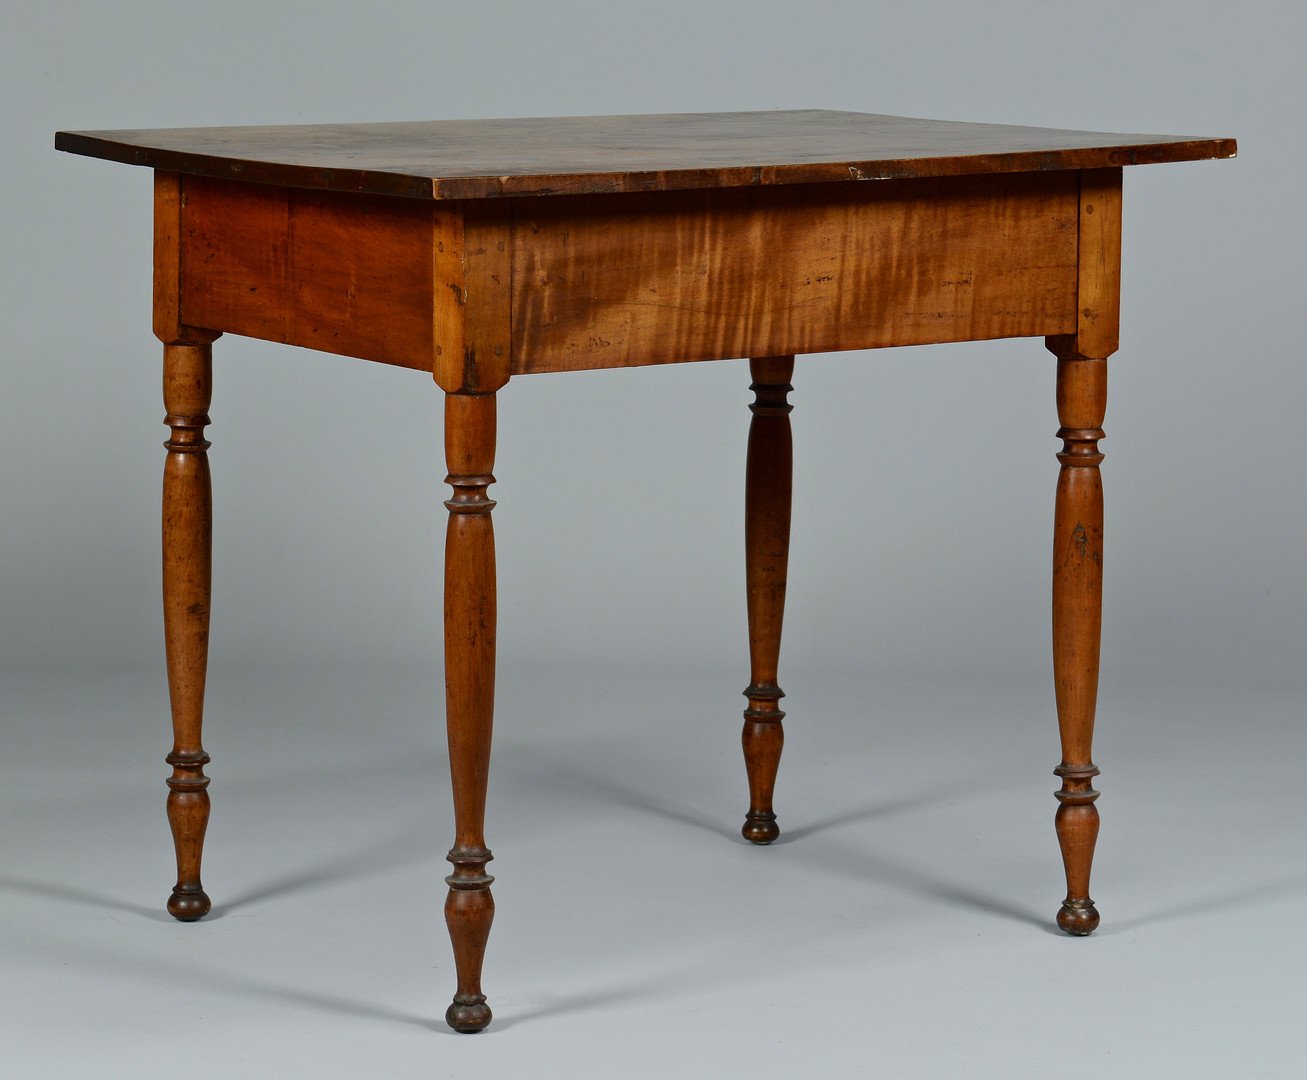 Lot 288: One Drawer Tiger Maple Work Table